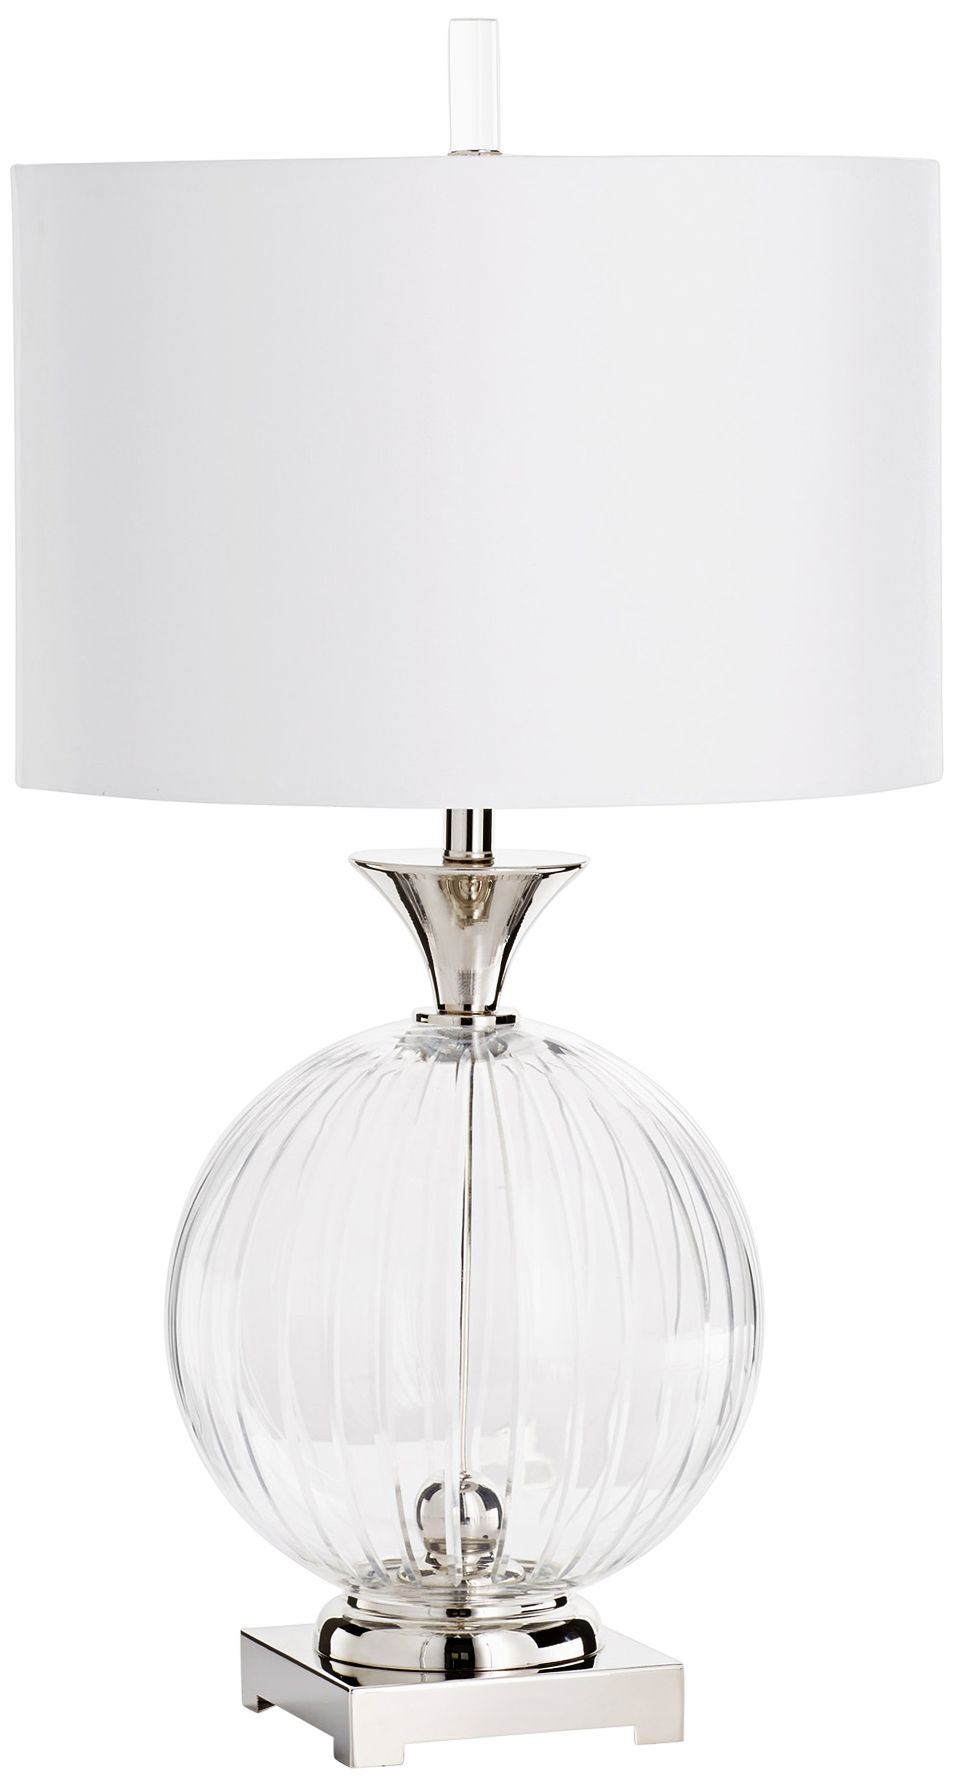 Dimond Ribbed Clear Glass Table Lamp 7T035 Lamps Plus